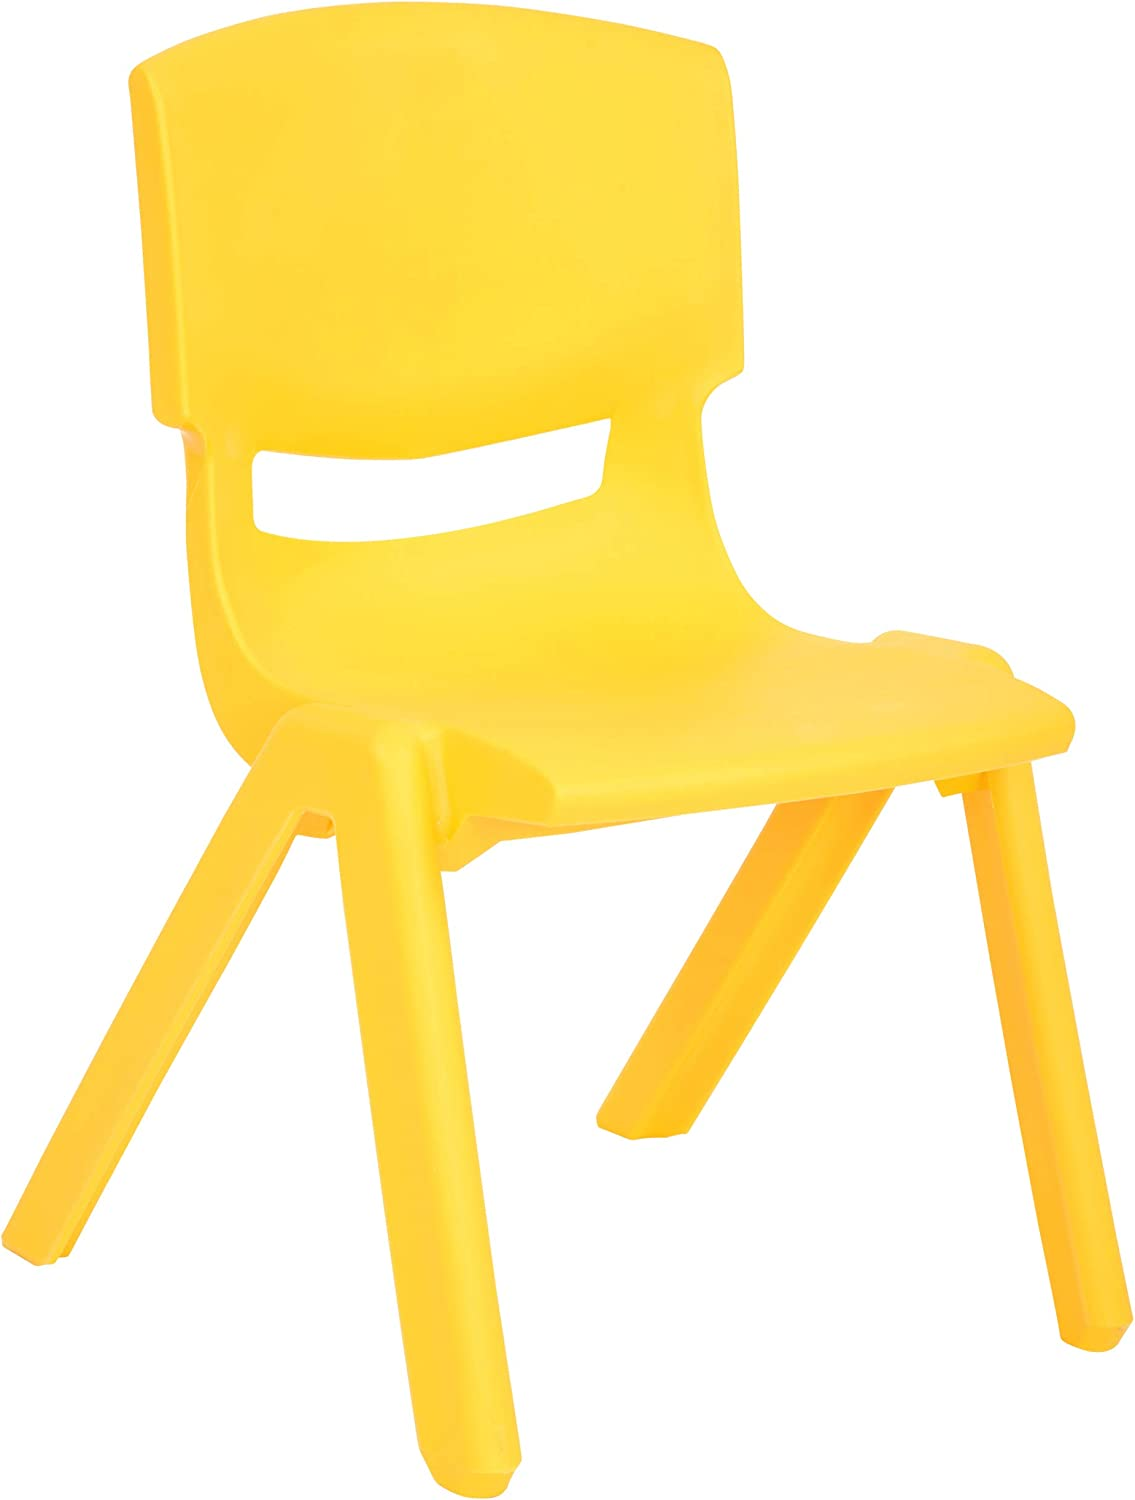 JOON Stackable Plastic Kids Learning Chairs, Yellow, 20.8x12.5 Inches